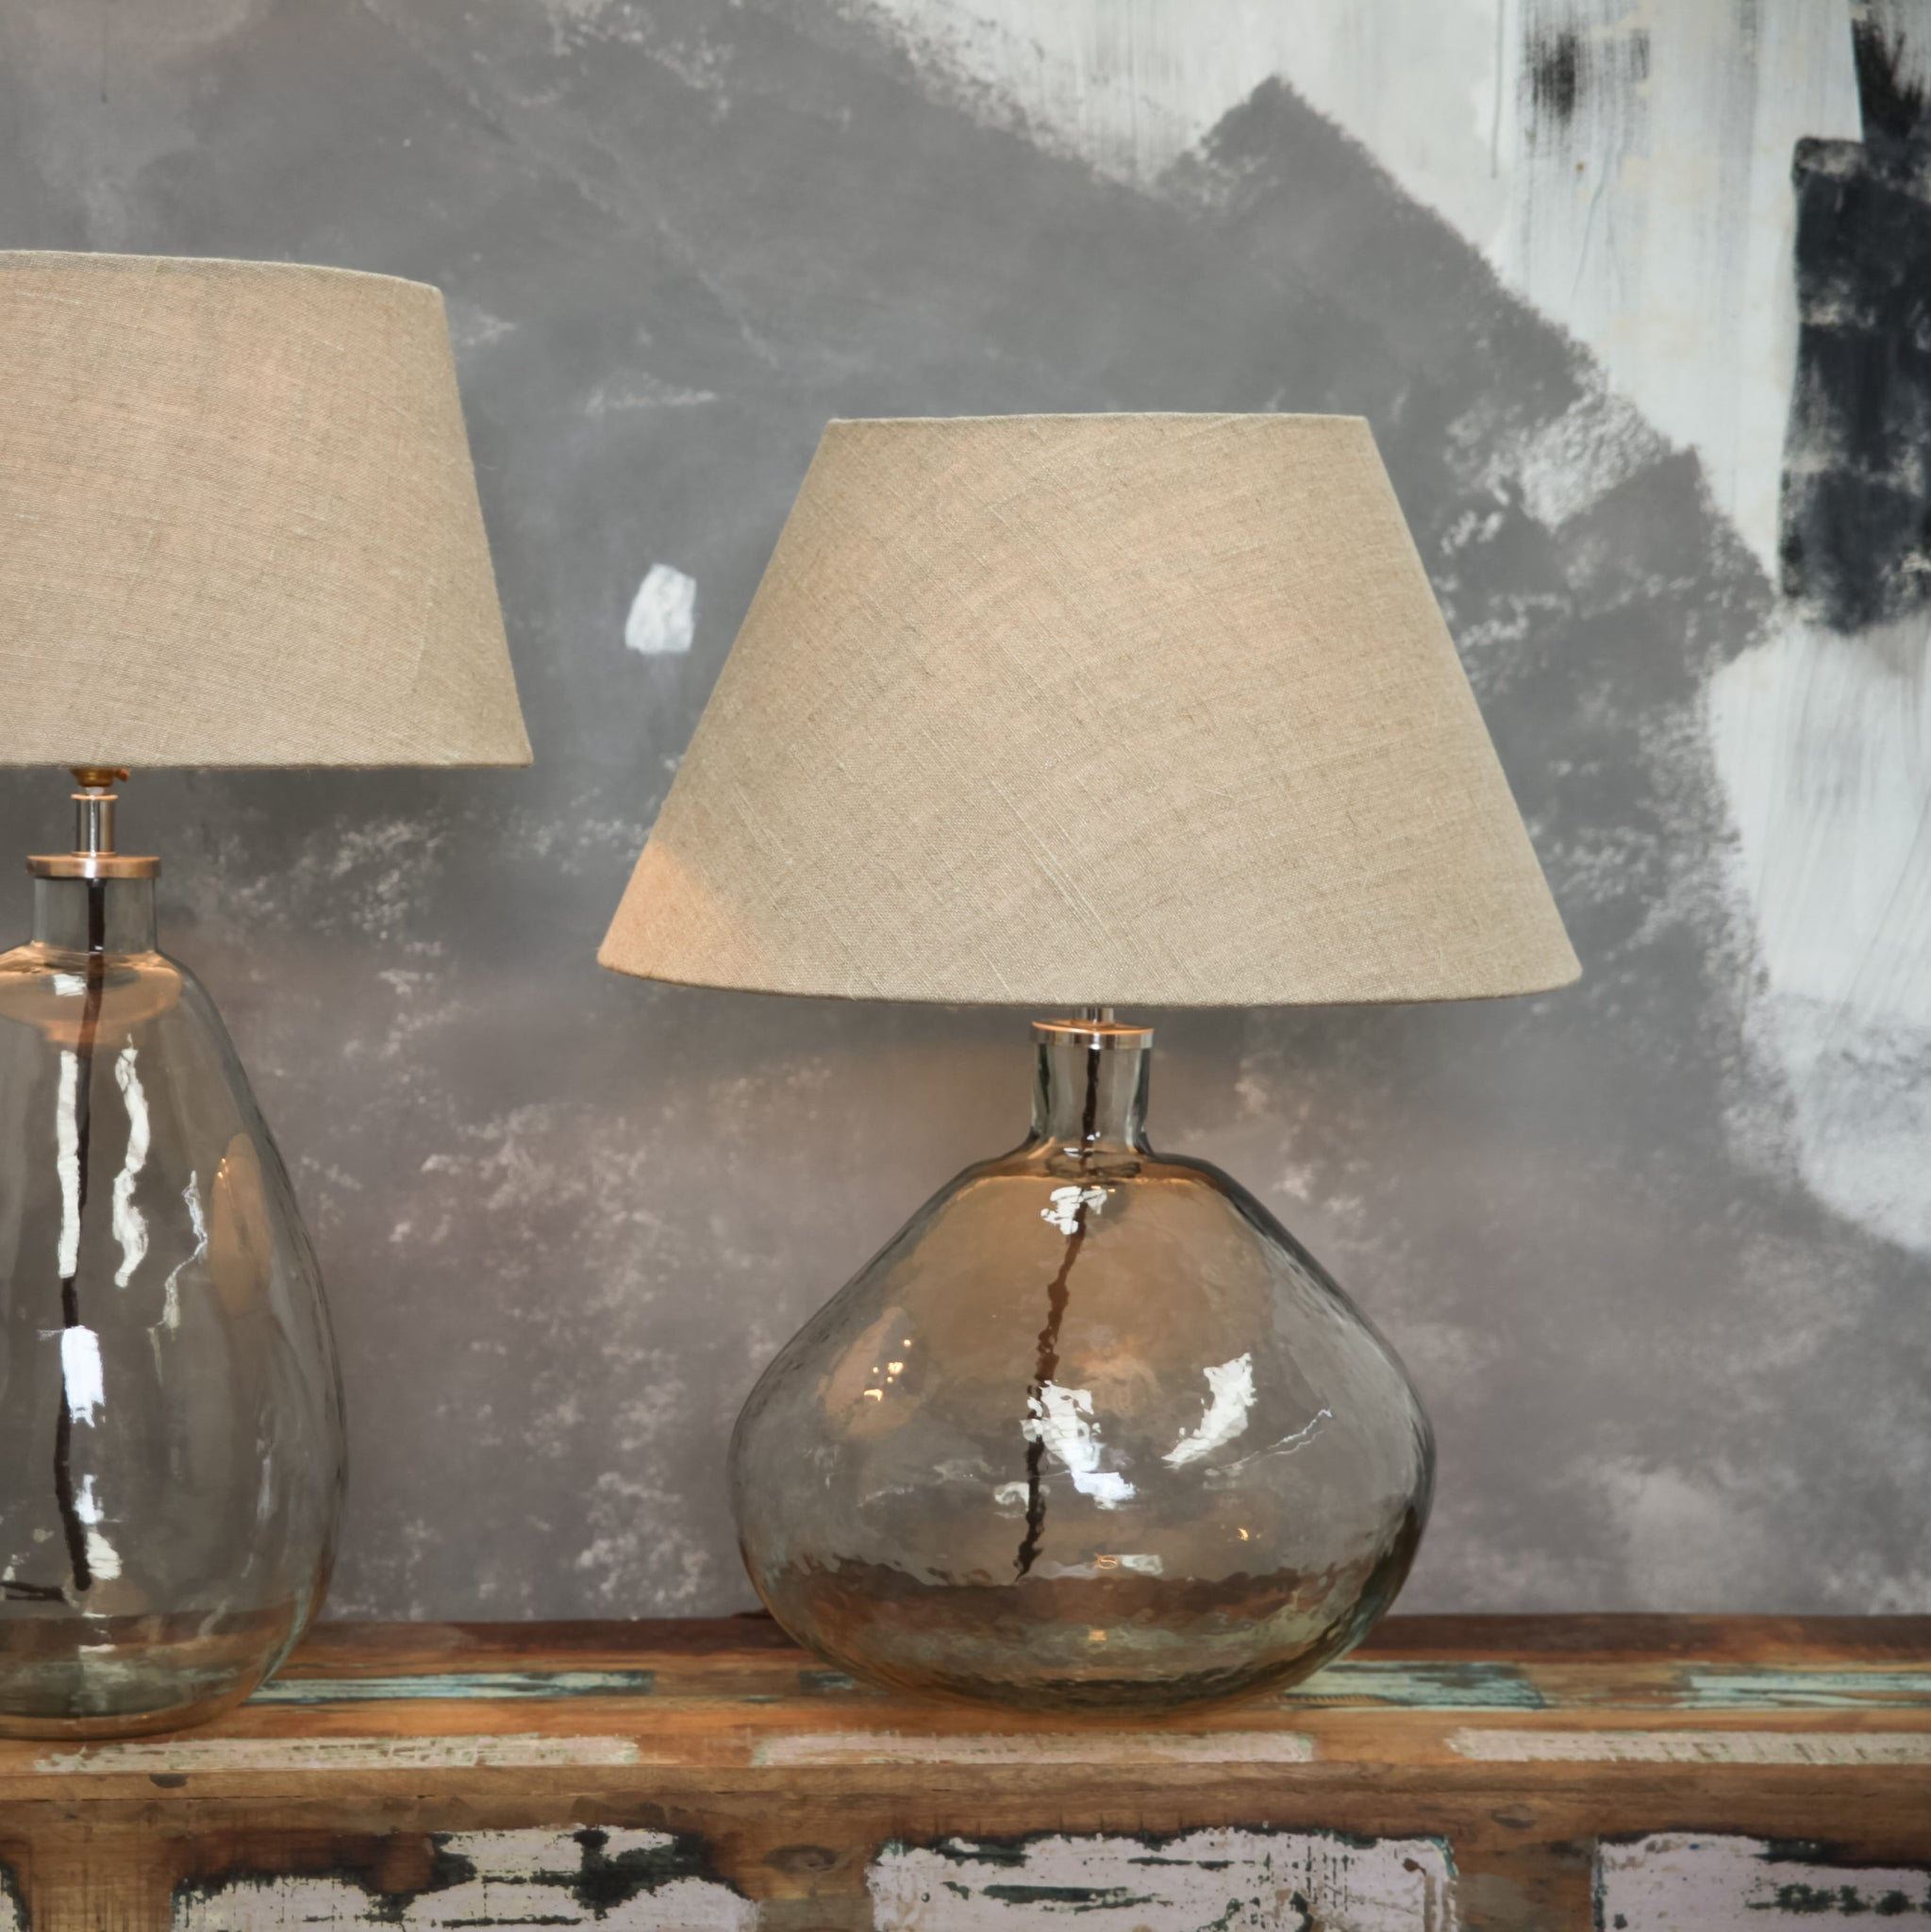 Large Baba Recycled Glass Lamp With Extra Large Stone Jute Shade by Nkuku - A Fly Went By